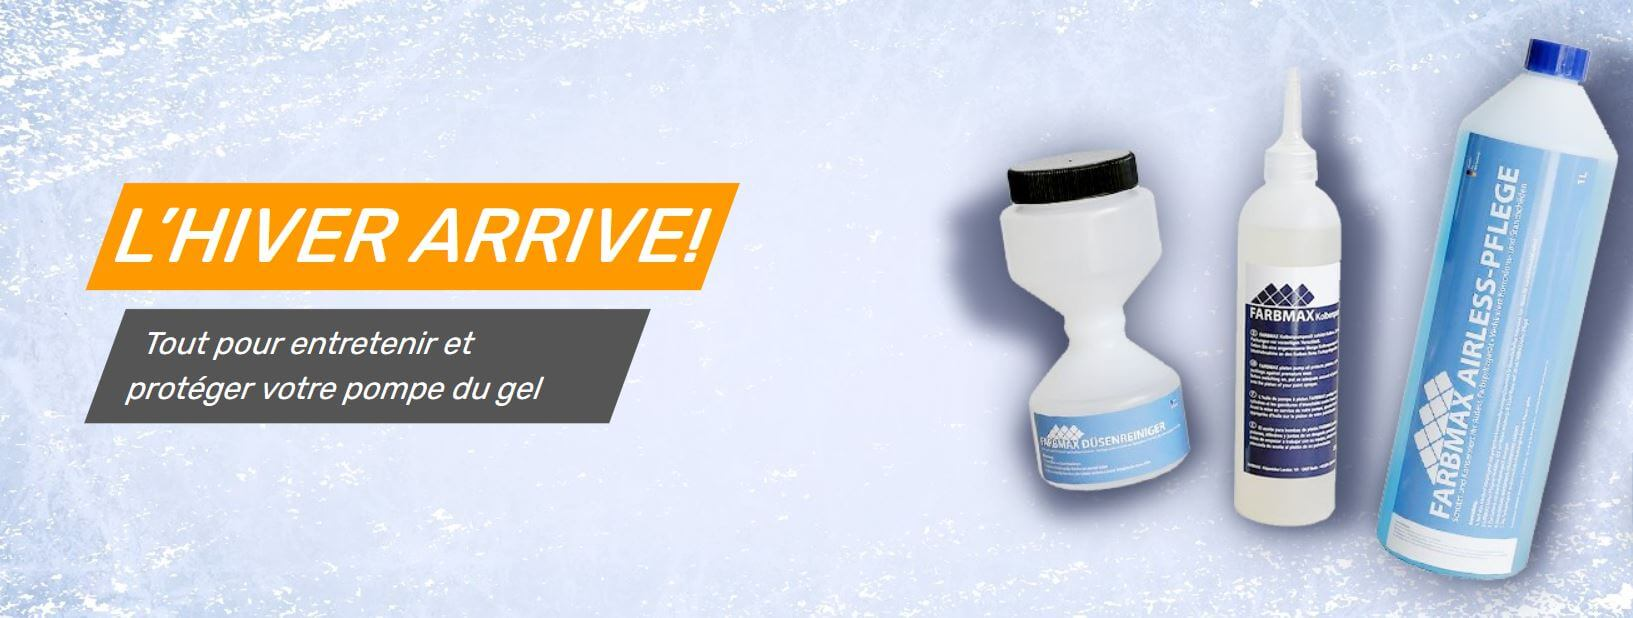 airless hiver promo